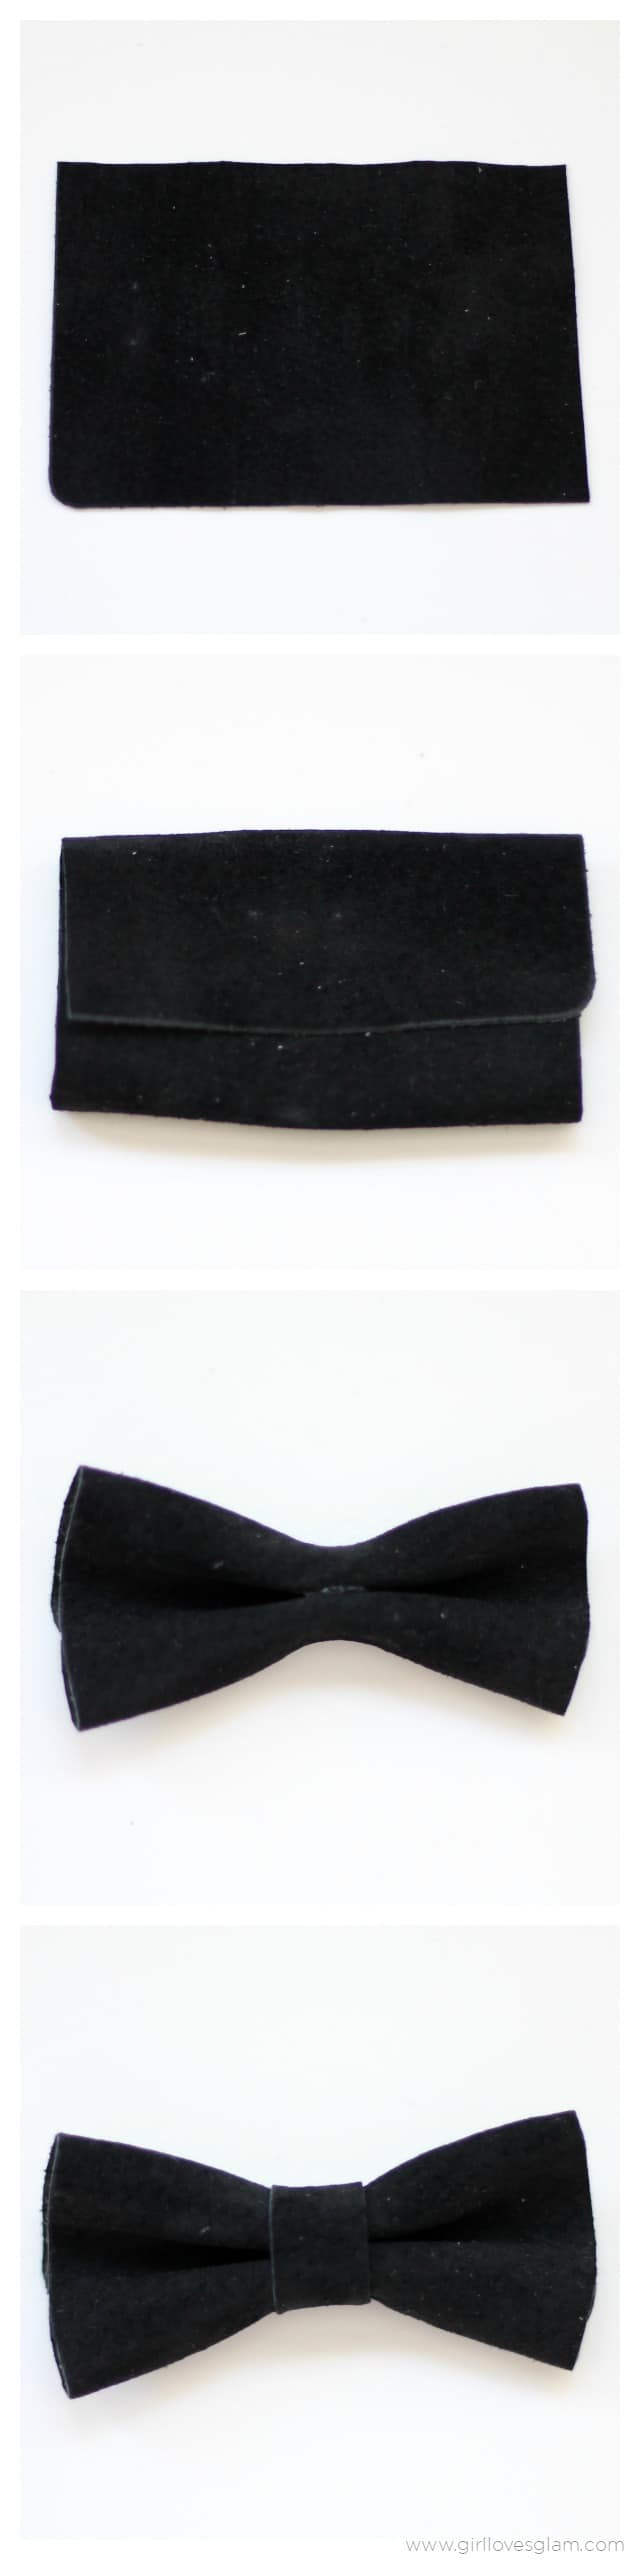 How to make a leather bow on www.girllovesglam.com